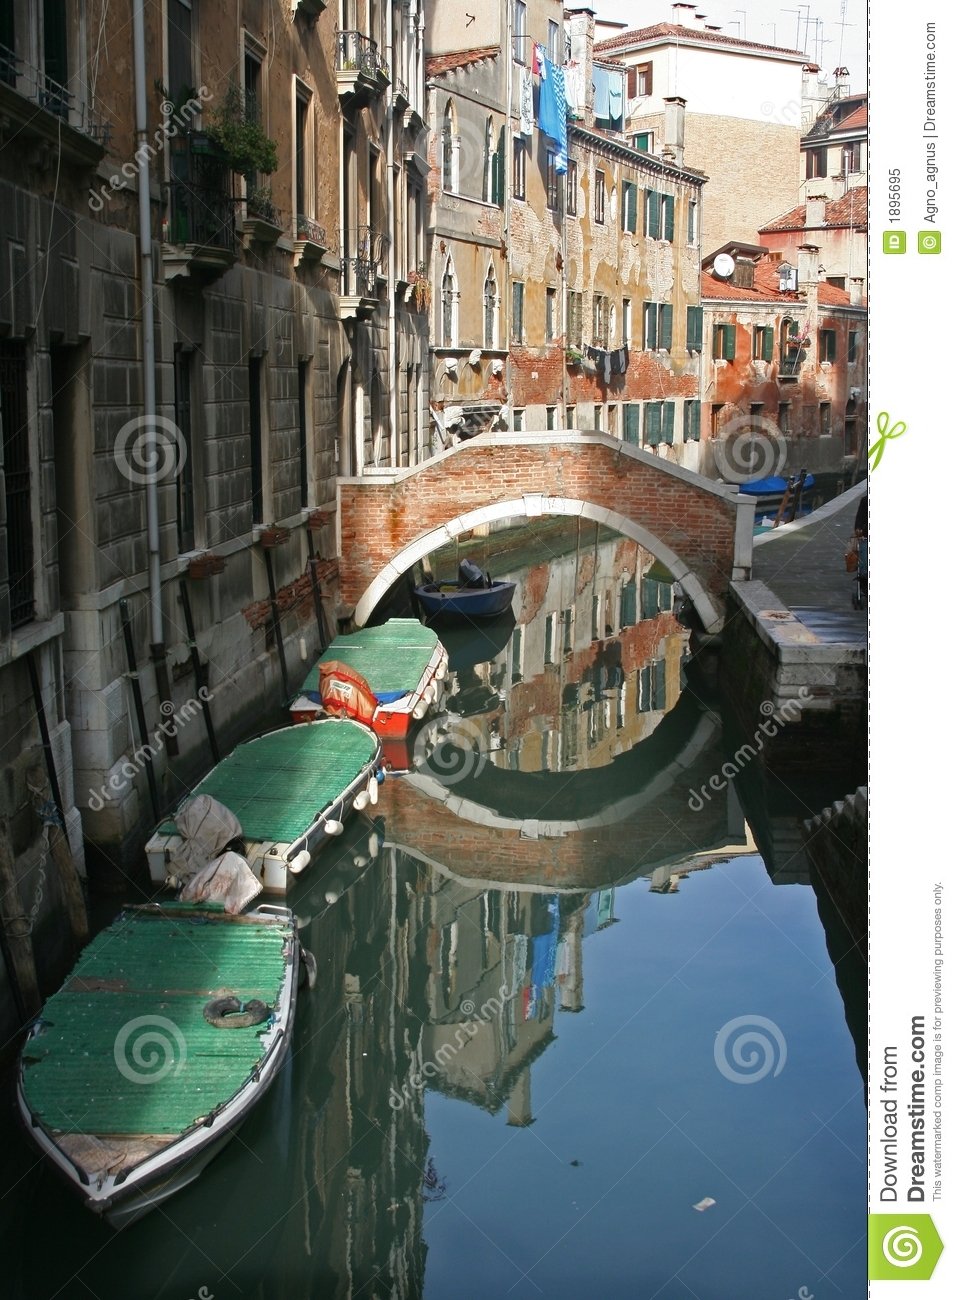 A Beautiful Canal Of Venice Italy Royalty Free Stock Photo - Image: 1895695